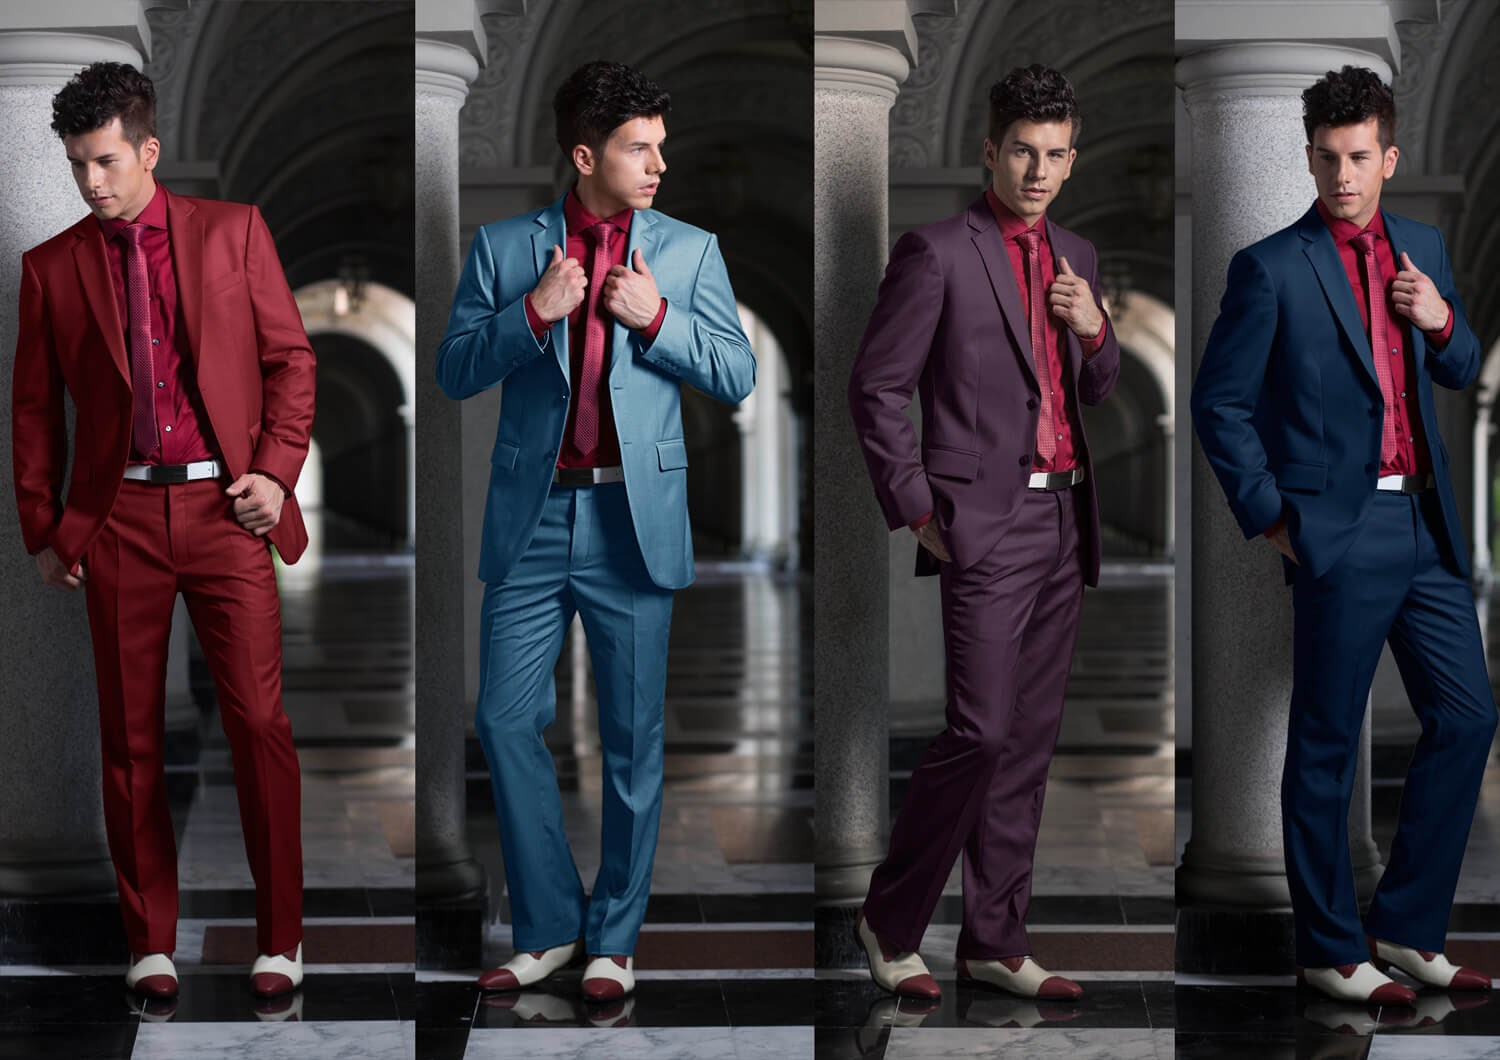 iTailor suits in various colors